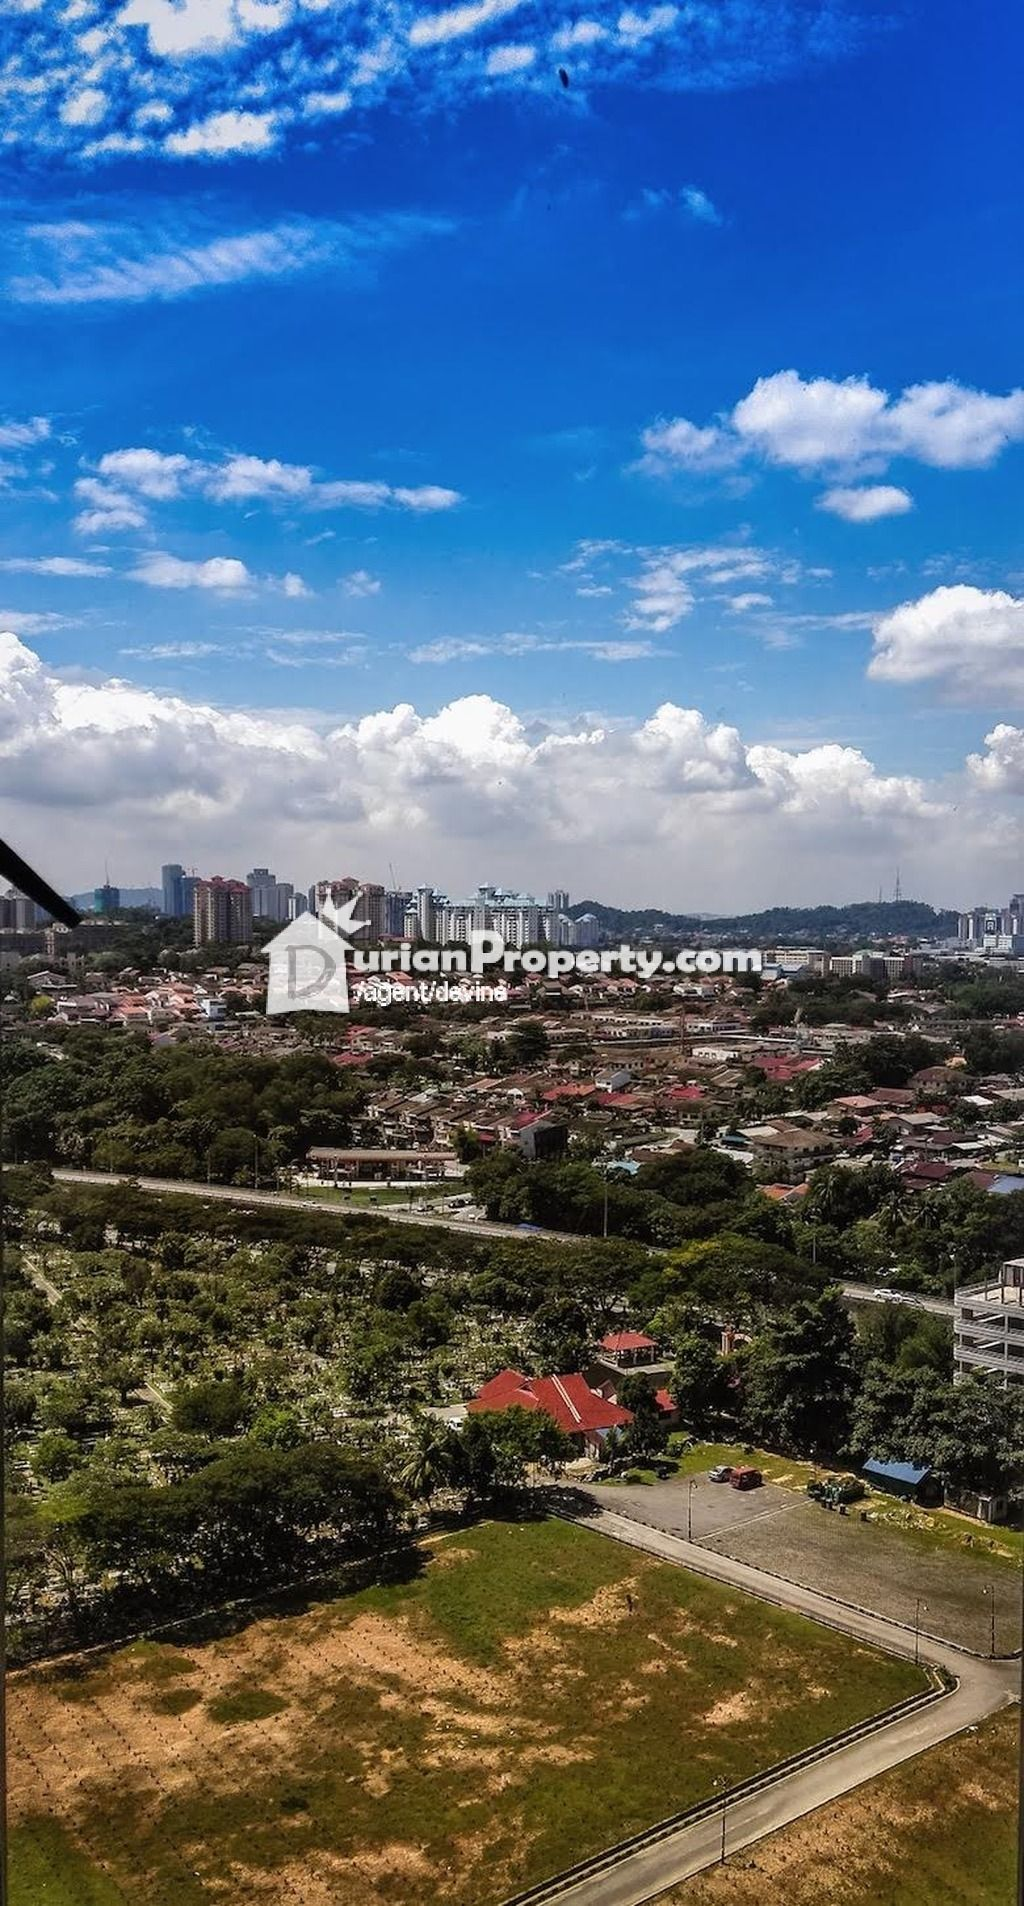 Property for Sale at Desa Kiara Property For Sale in Malaysia